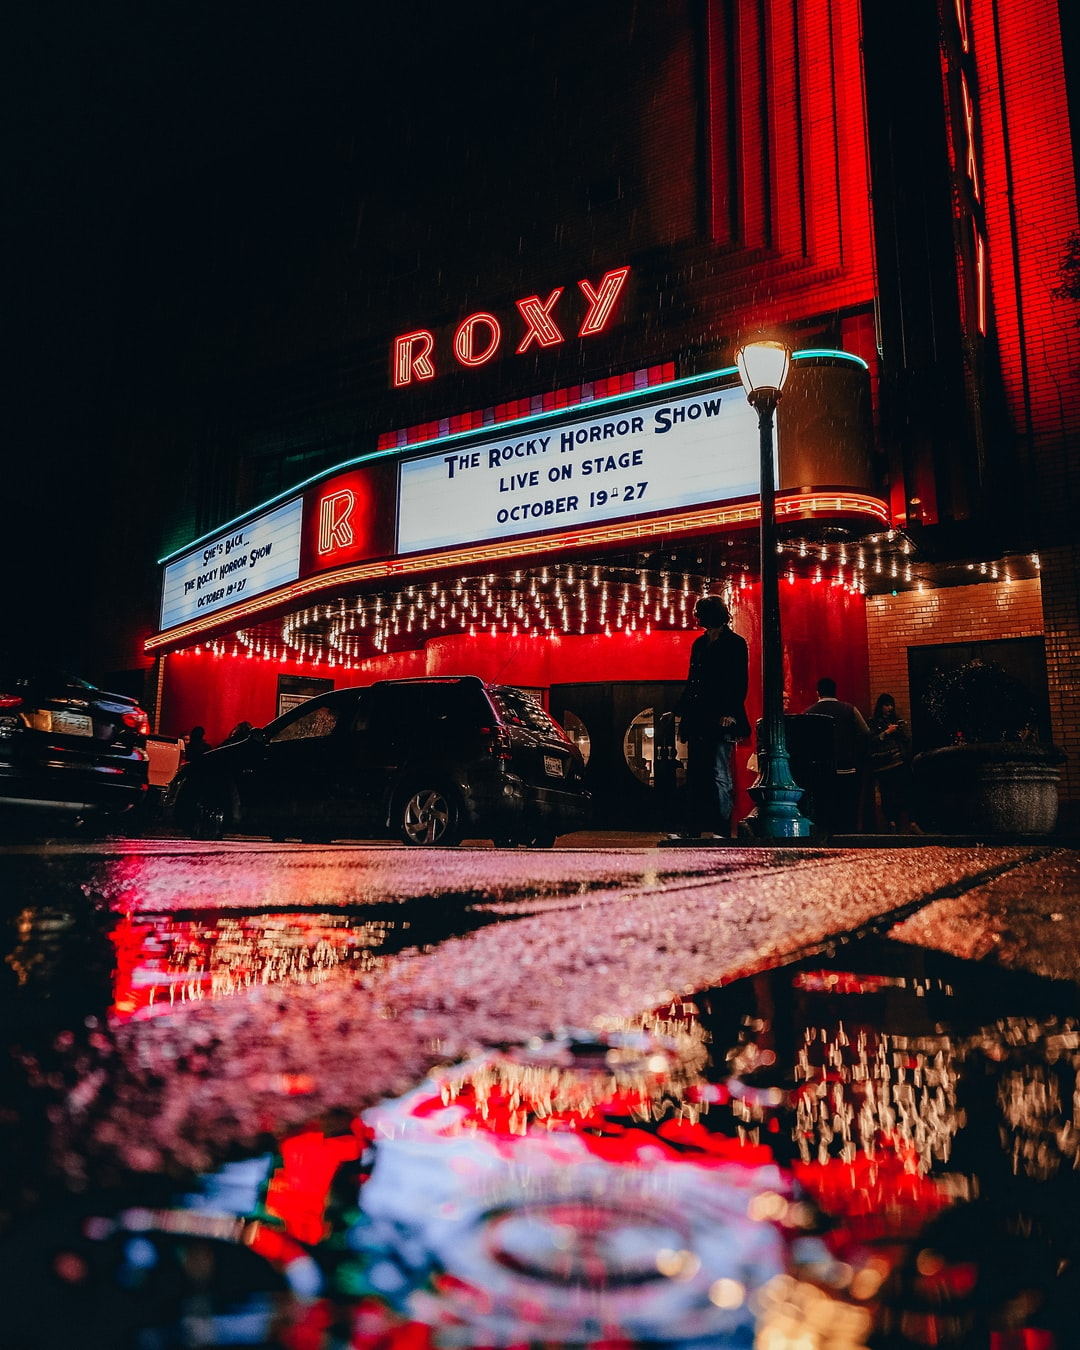 I've been photographing this lovely theater for years now. About midway through 2018 they decided to rebuild the marquee. And I must say, its brought new life to the establishment.